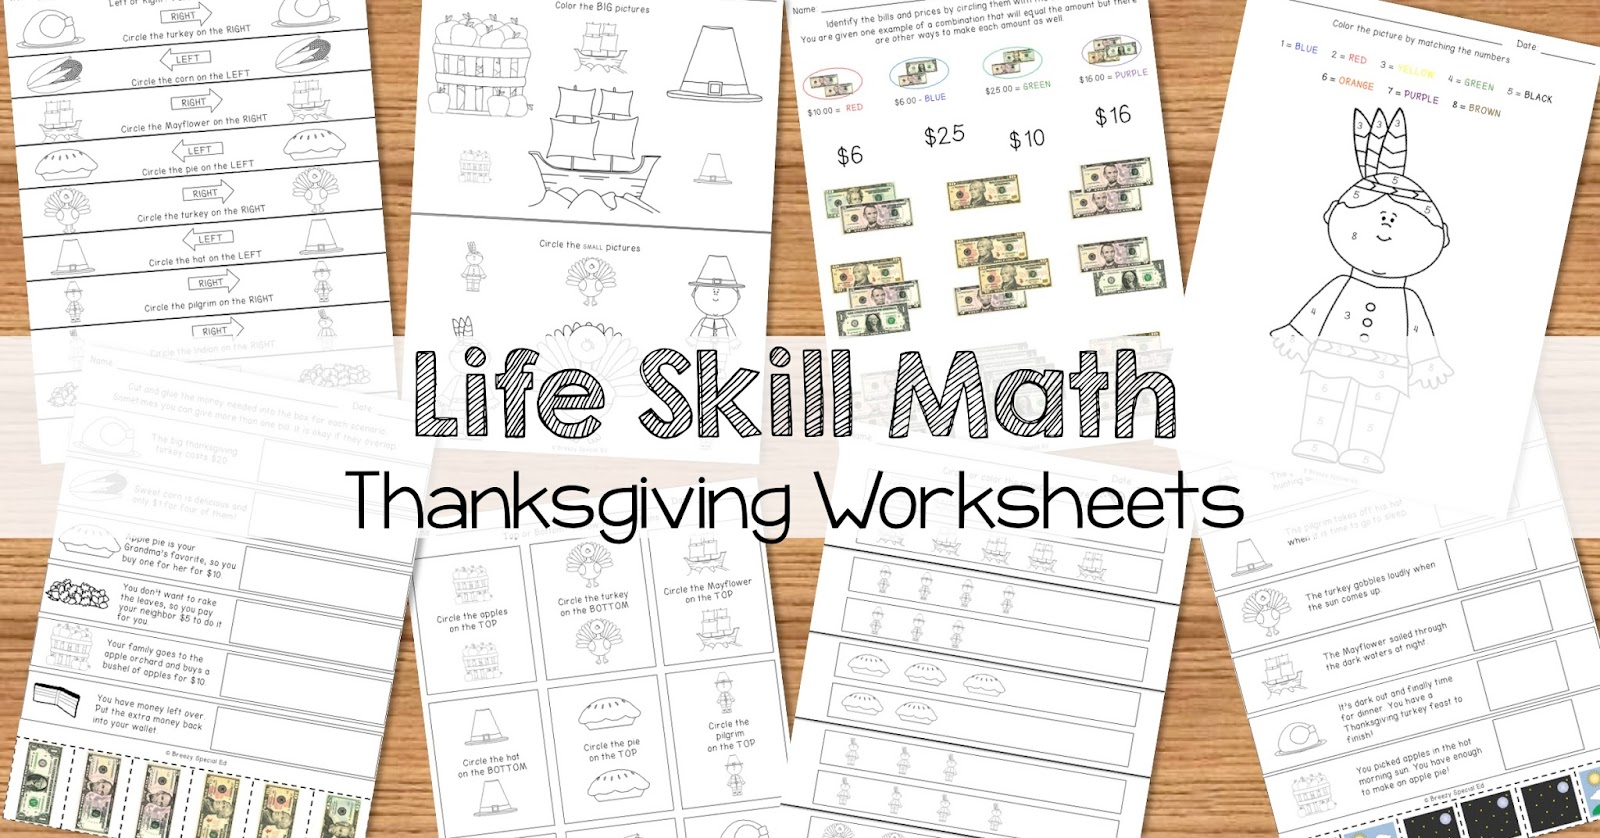 Workbooks special education life skills worksheets : Math Life Skill Worksheets: Thanksgiving Themed - Breezy Special Ed